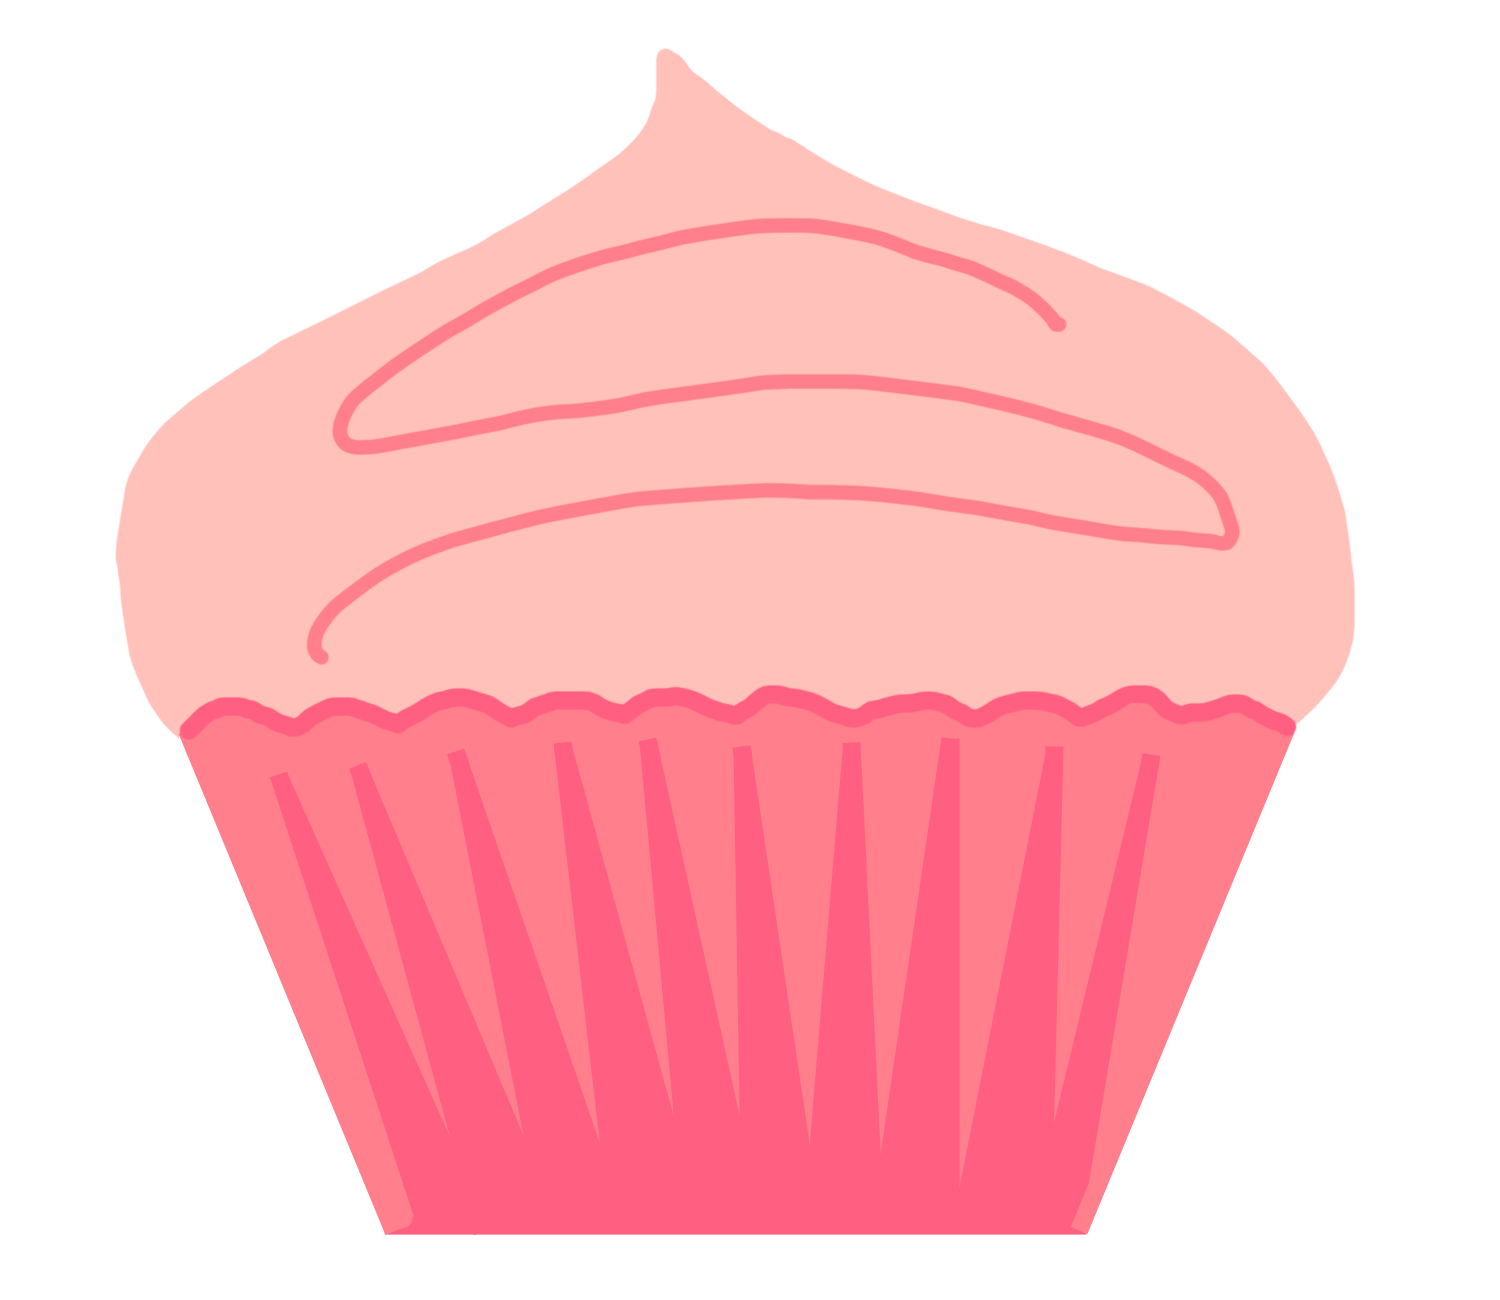 Heart cupcake clipart clip royalty free stock Bakery Cupcake Clipart | jokingart.com Cupcake Clipart clip royalty free stock